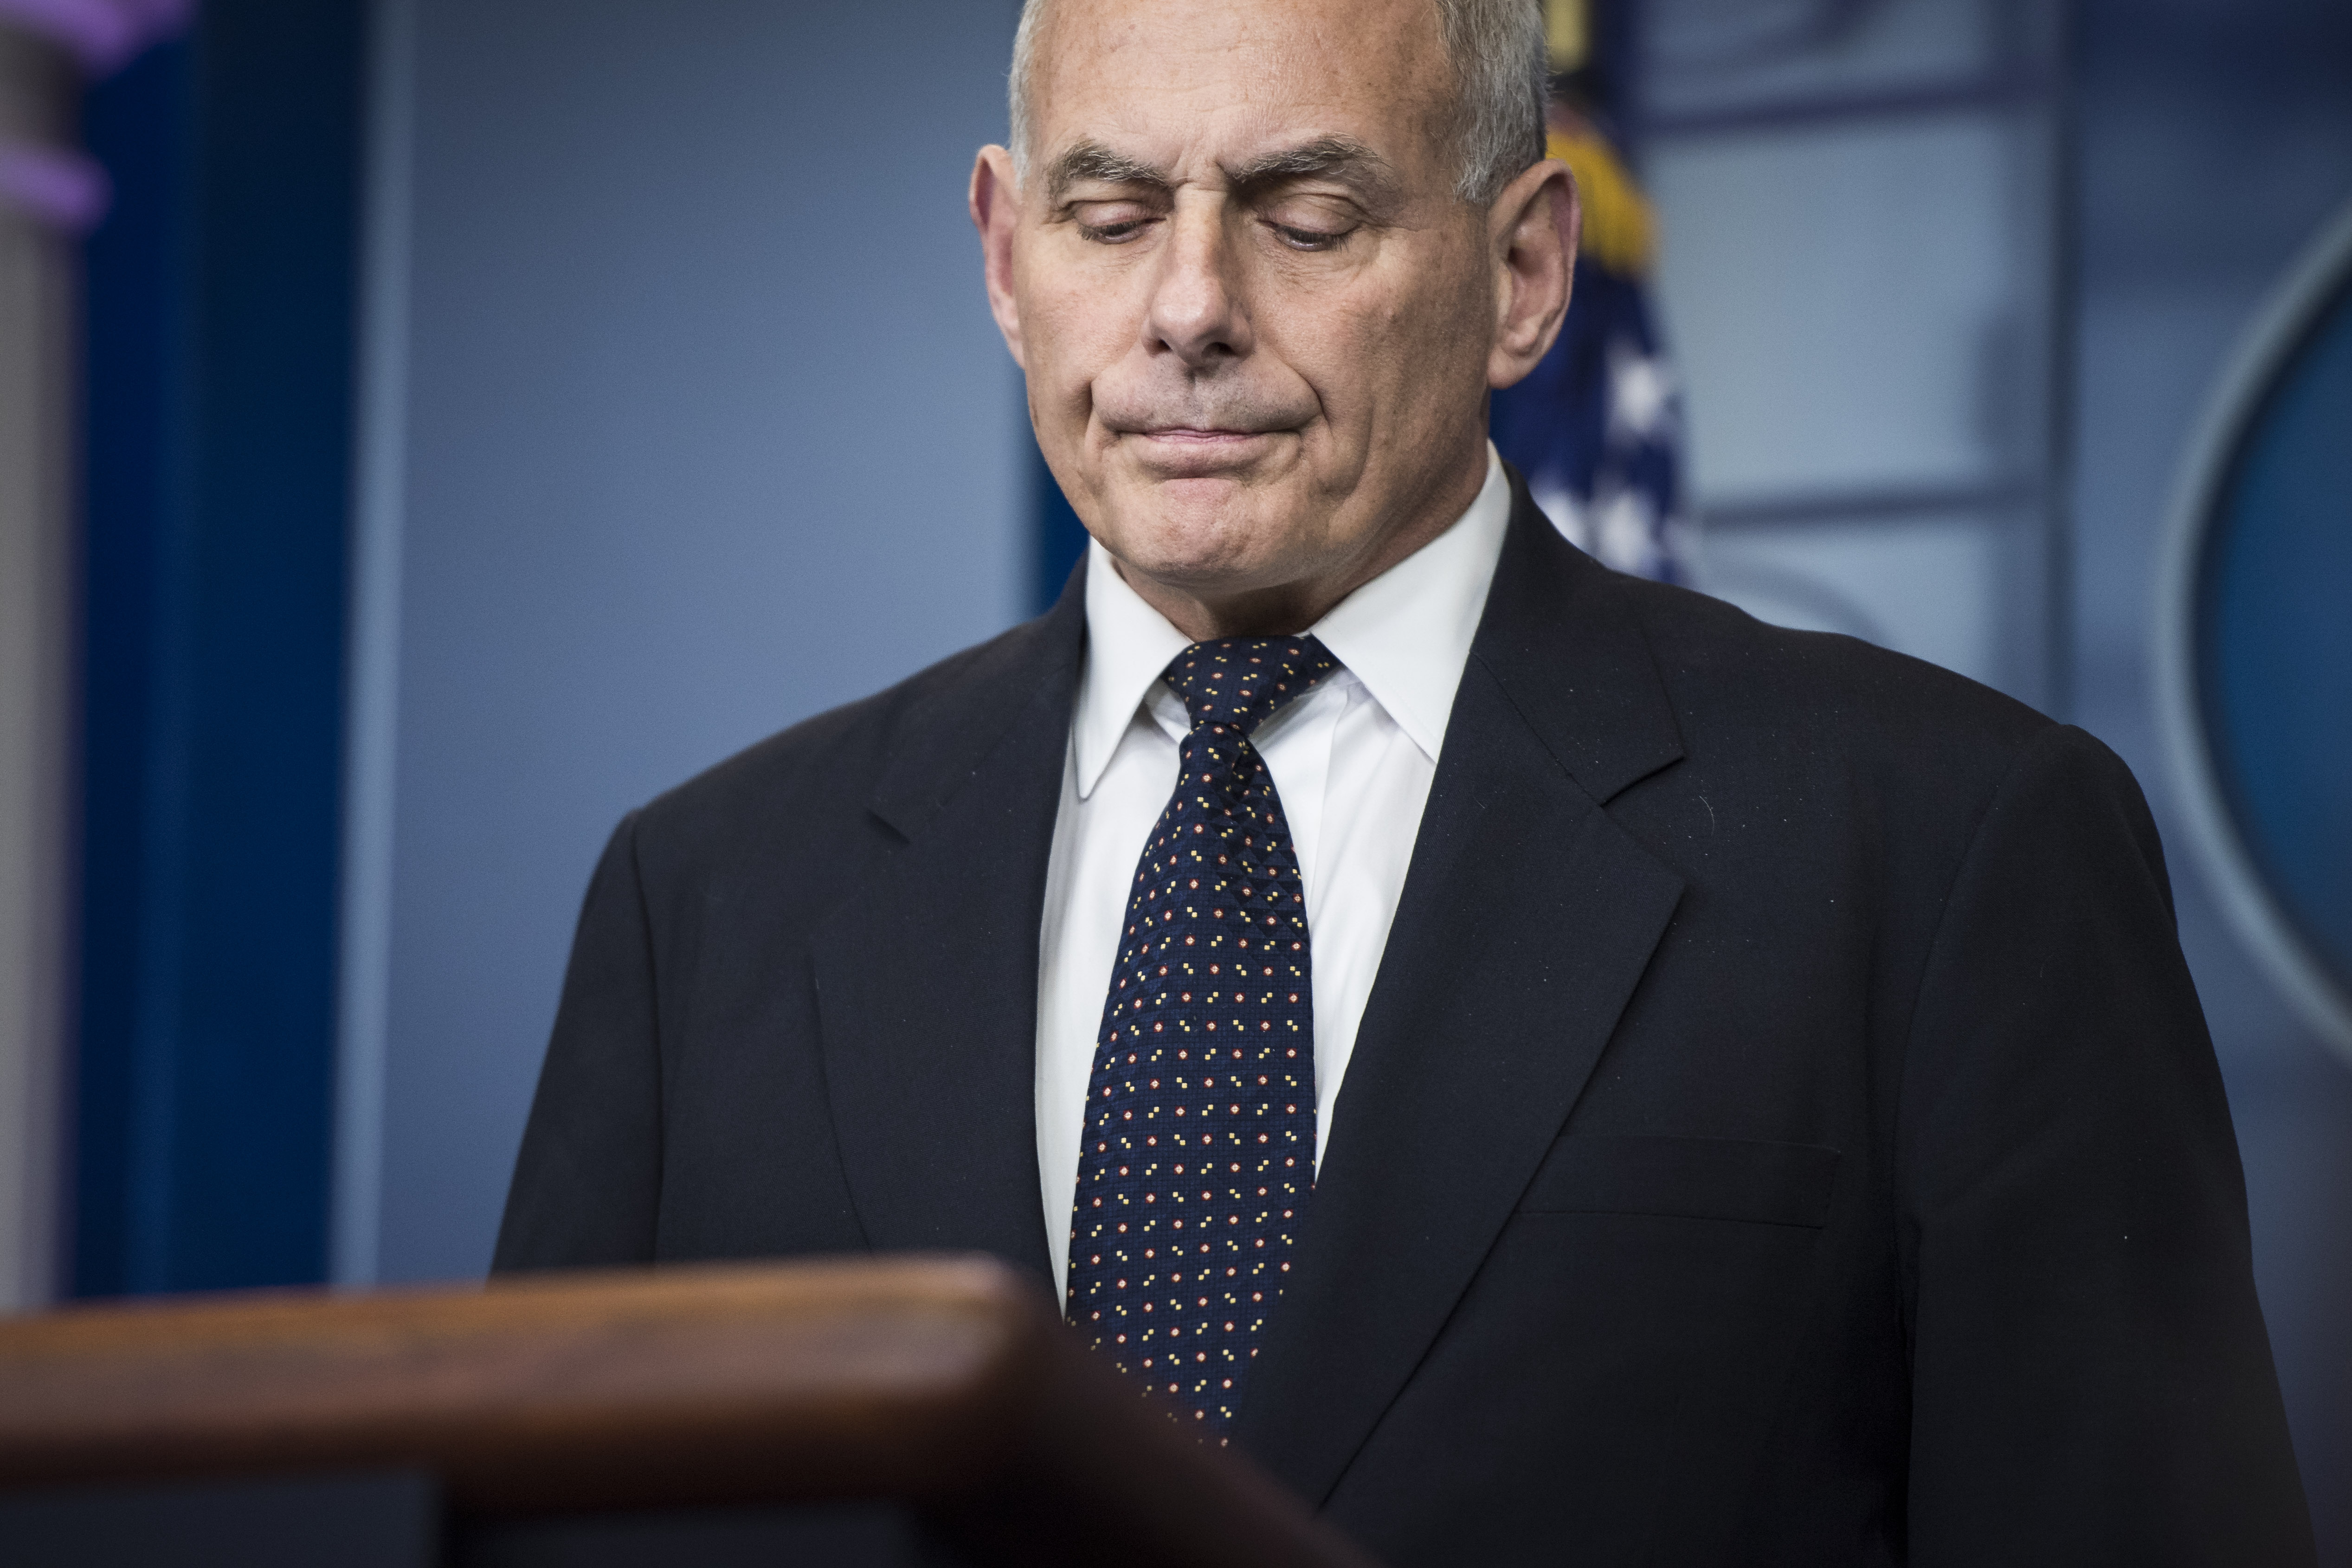 White House Chief of Staff John F. Kelly takes questions and talks about his son during the daily press briefing at the White House in Washington, DC on Thursday, Oct. 19, 2017.